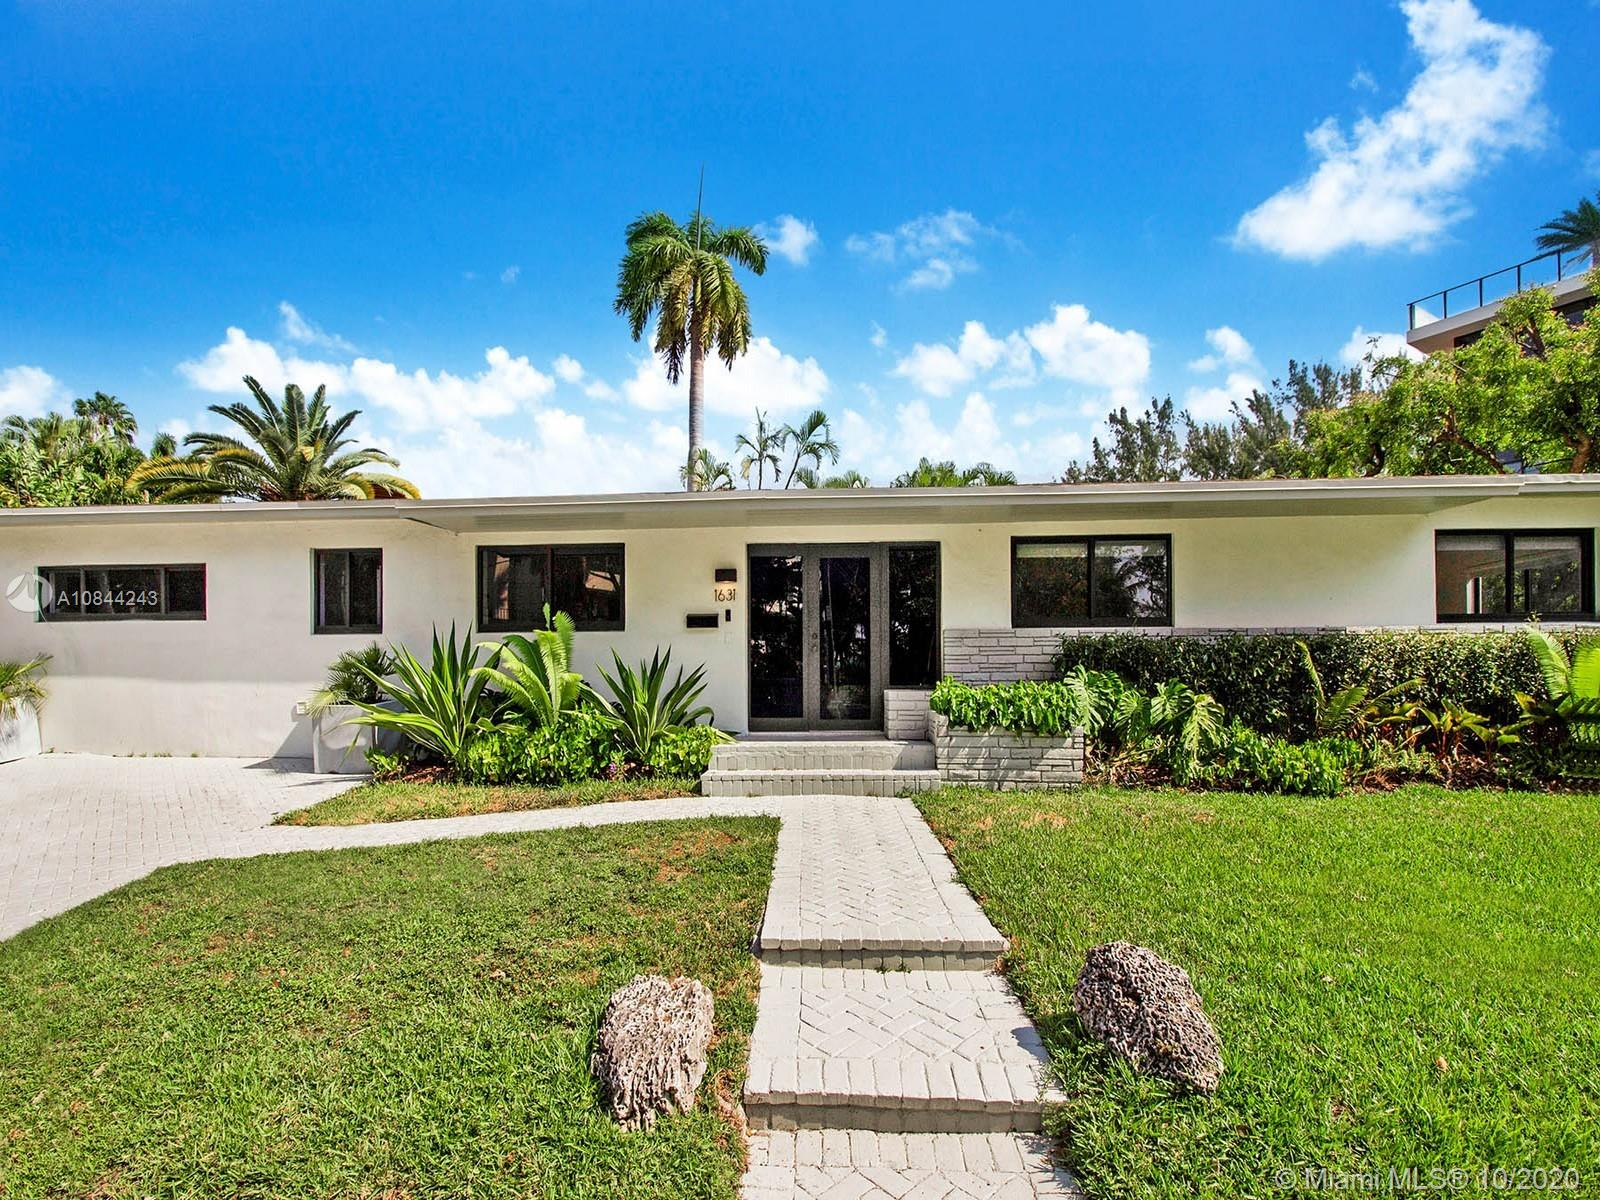 Prime North Coconut Grove location on a quiet street with calming ocean breezes.  This one-story modern residence has been recently renovated including all new impact glass windows and doors. You will love cooking in the freshly designed kitchen with water views of the Bay. Gorgeous terrazzo flooring complements the contemporary vibe and layout. Lushly landscaped with plenty of grass for doggies and kids to play. Playroom may be converted into a 4th bedroom easily. Amazing accessibility to the ocean right across from the home. Walk your paddle board in seconds to your own riparian rights to Biscayne Bay. Stroll over to Kennedy Park, newly designed Cocowalk or jog to downtown. You can't beat this location all day long surrounded by some of the most expensive real estate in Miami!